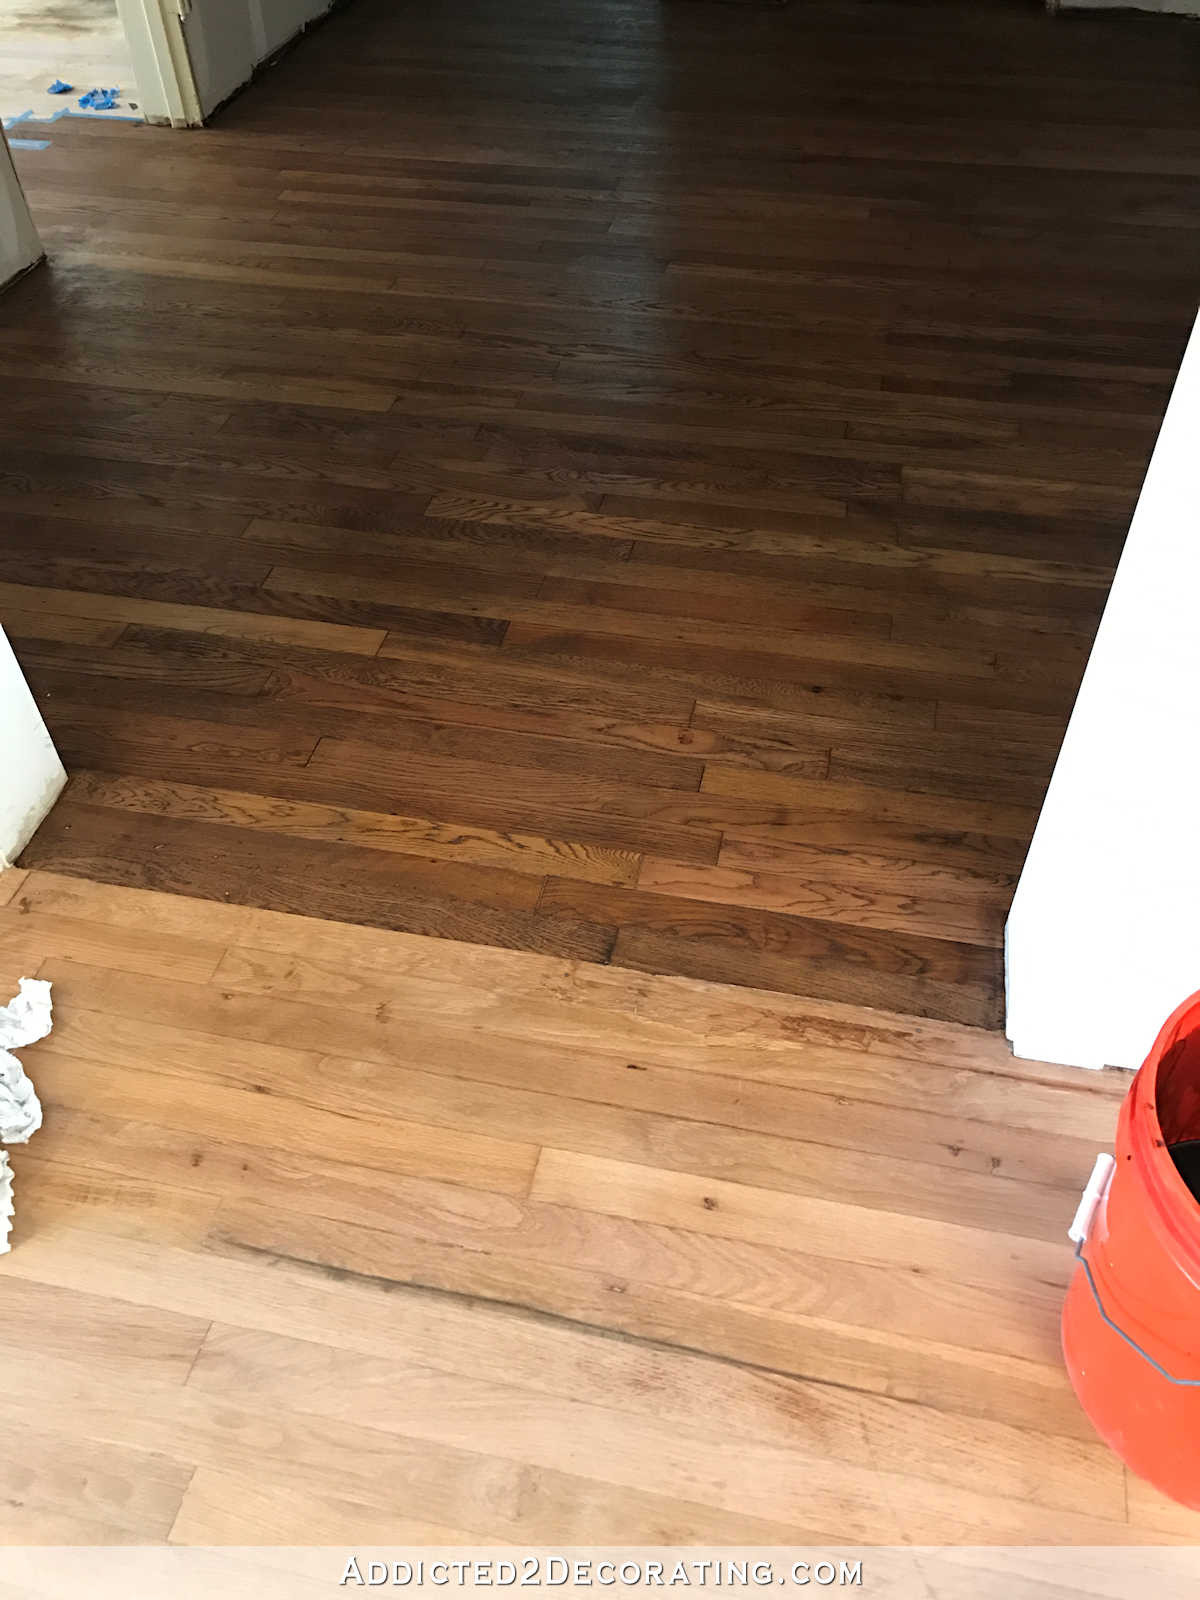 red oak hardwood flooring for sale of adventures in staining my red oak hardwood floors products process regarding staining red oak hardwood floors 2 tape off one section at a time for